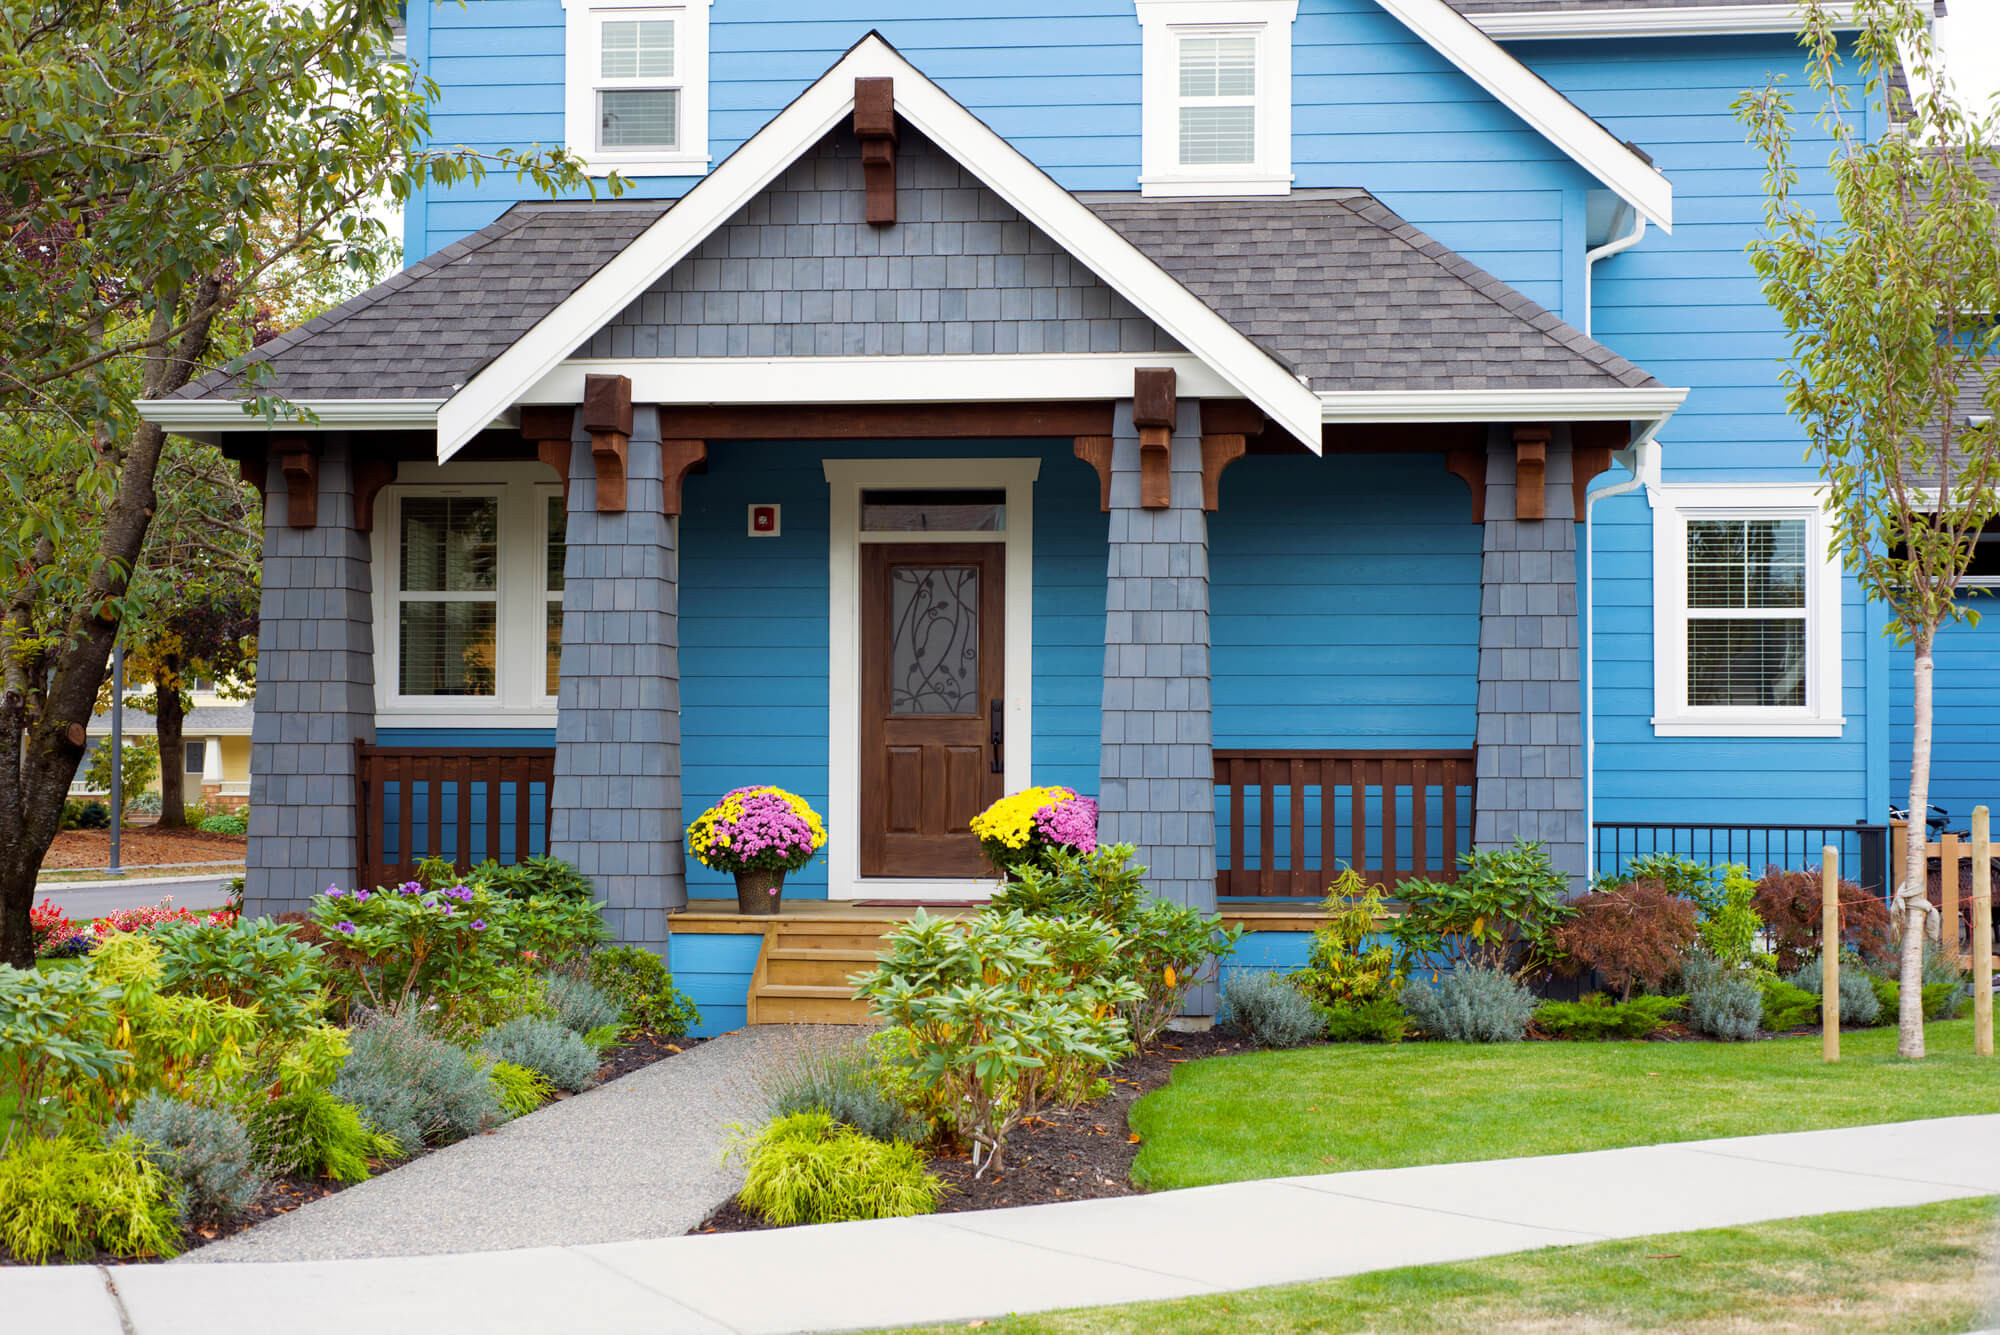 Front Yard Landscape Picture  6 Bud Friendly Ways to Landscape Your Front Yard